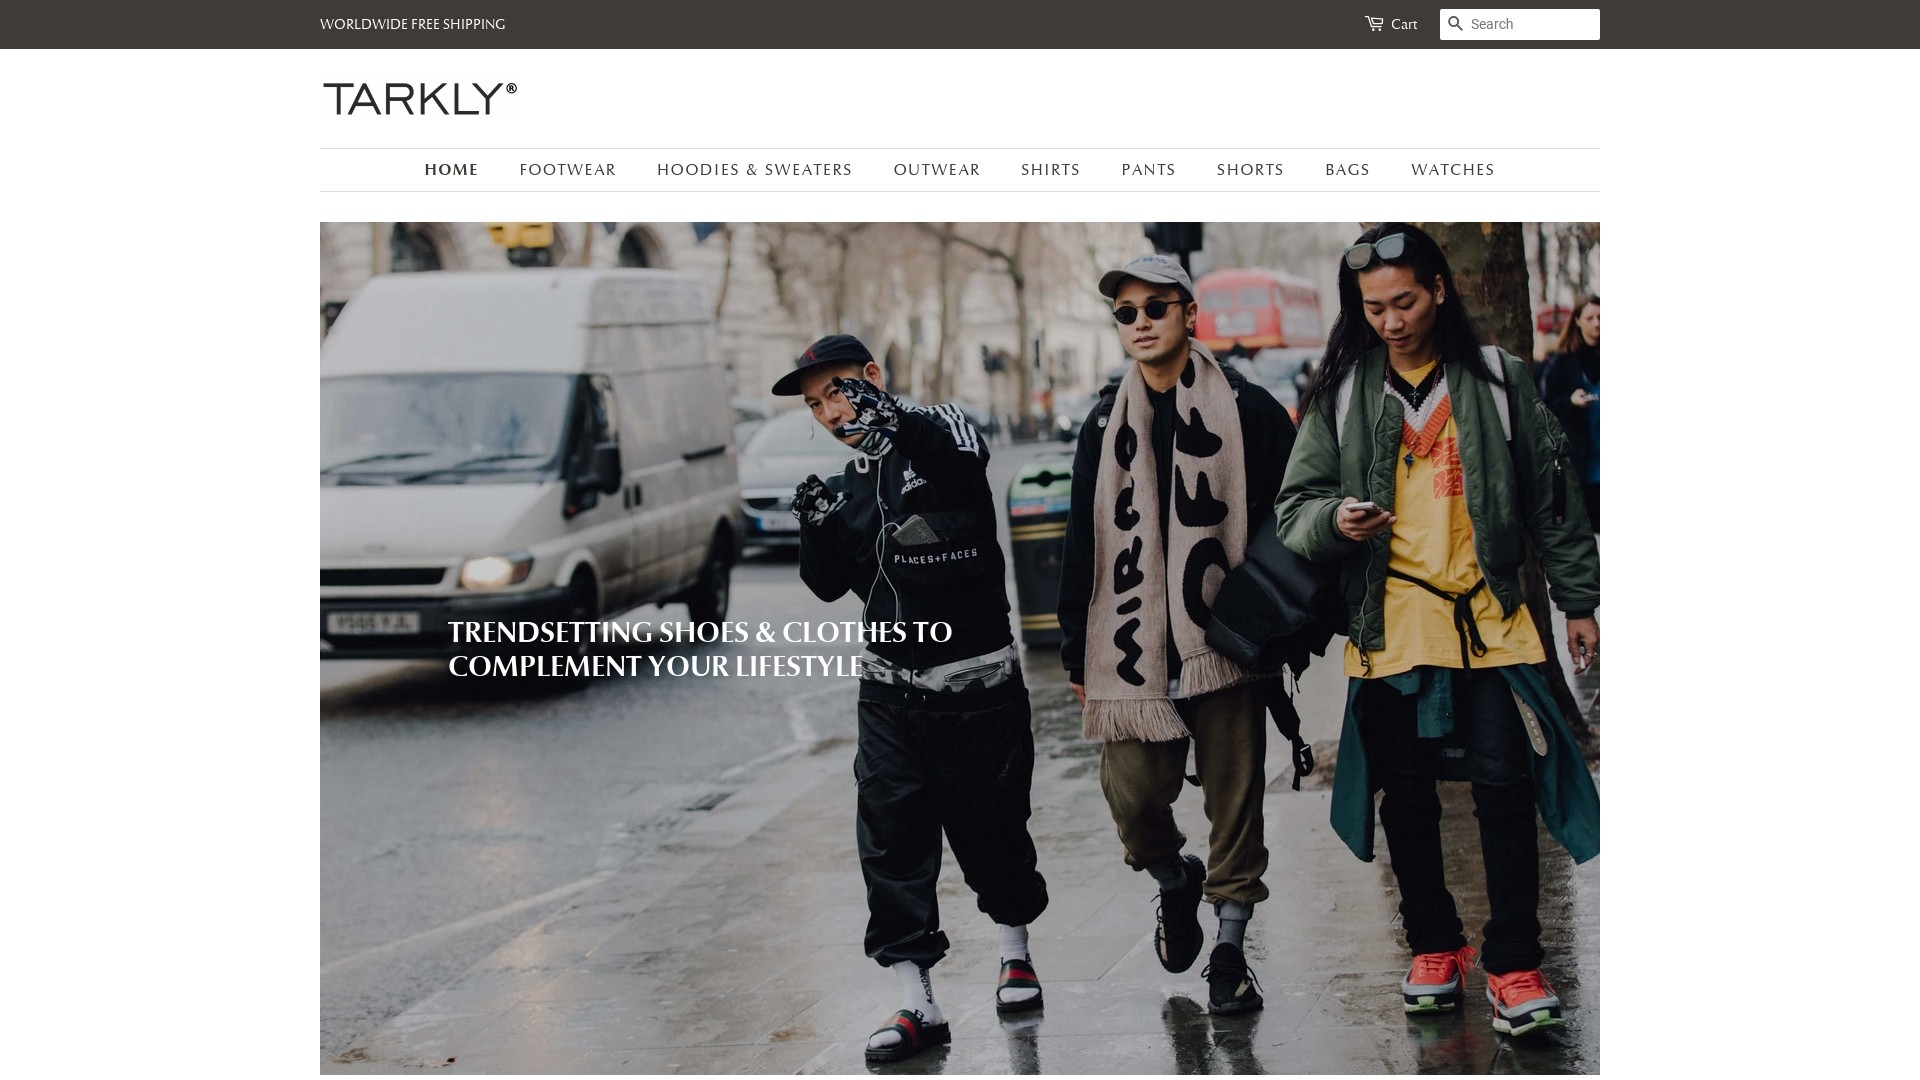 Is Tarkly a Scam? See the Review of the Online Store